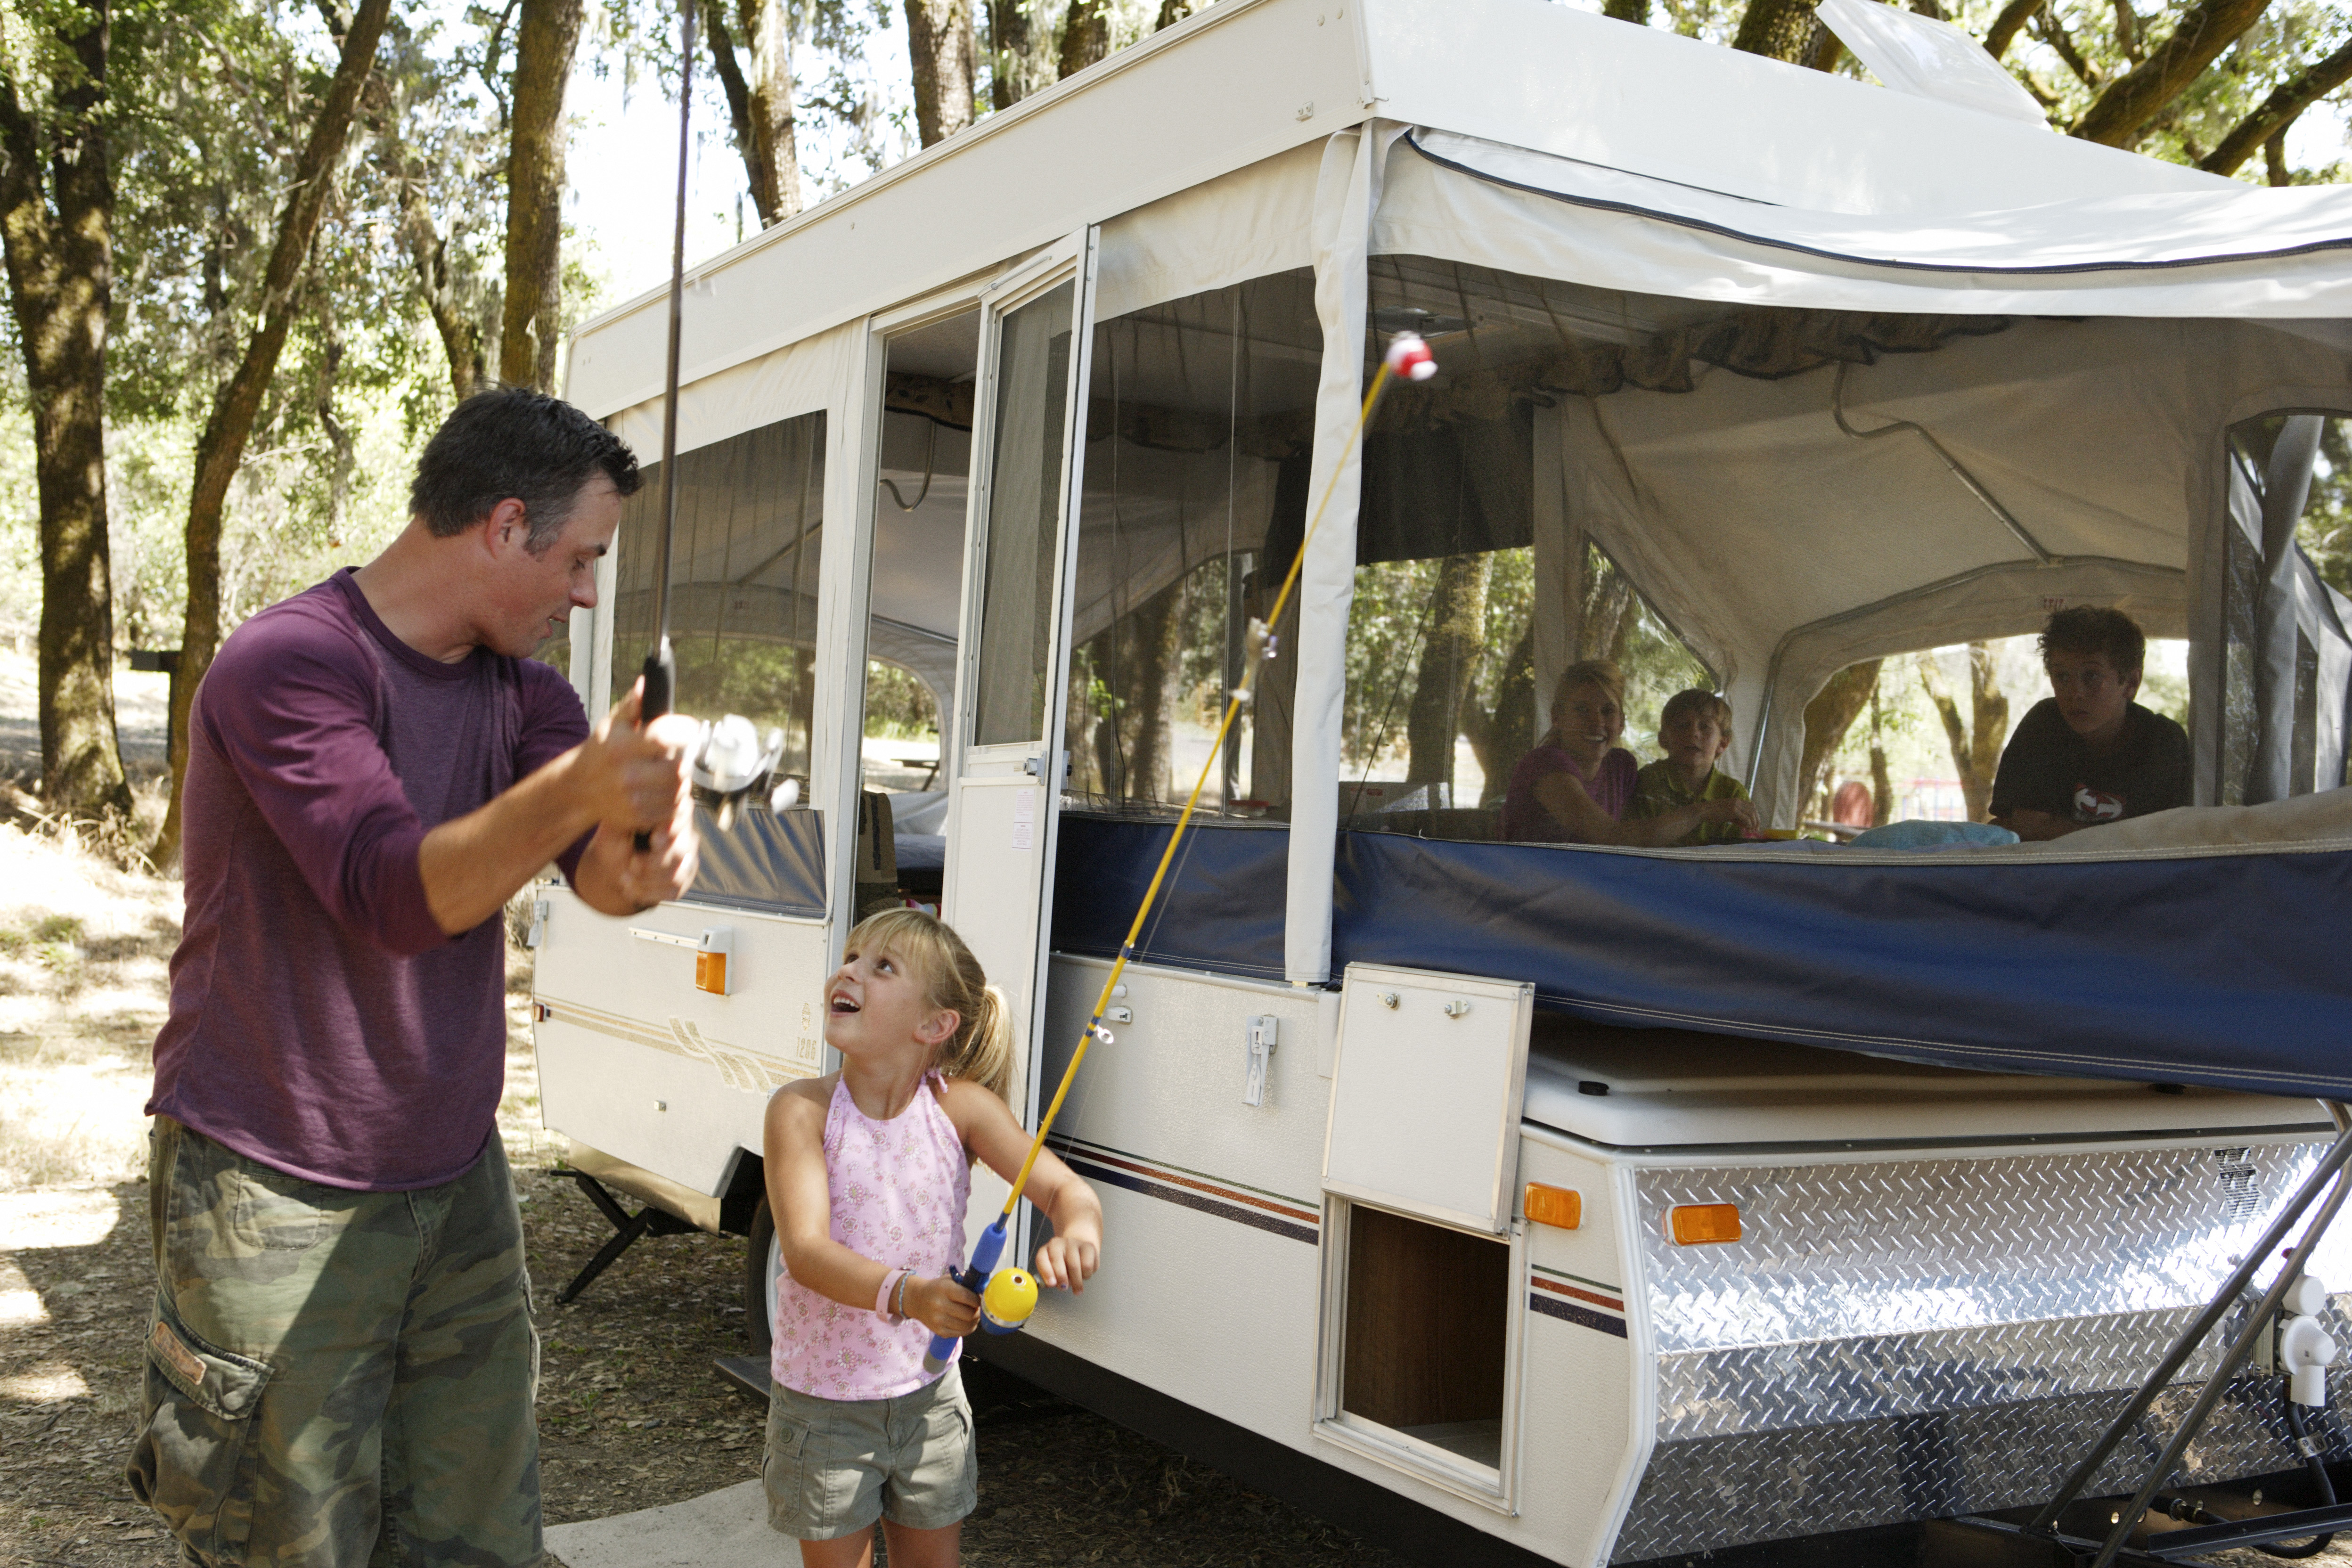 father-and-daughter-with-folding-camper-lg.jpg